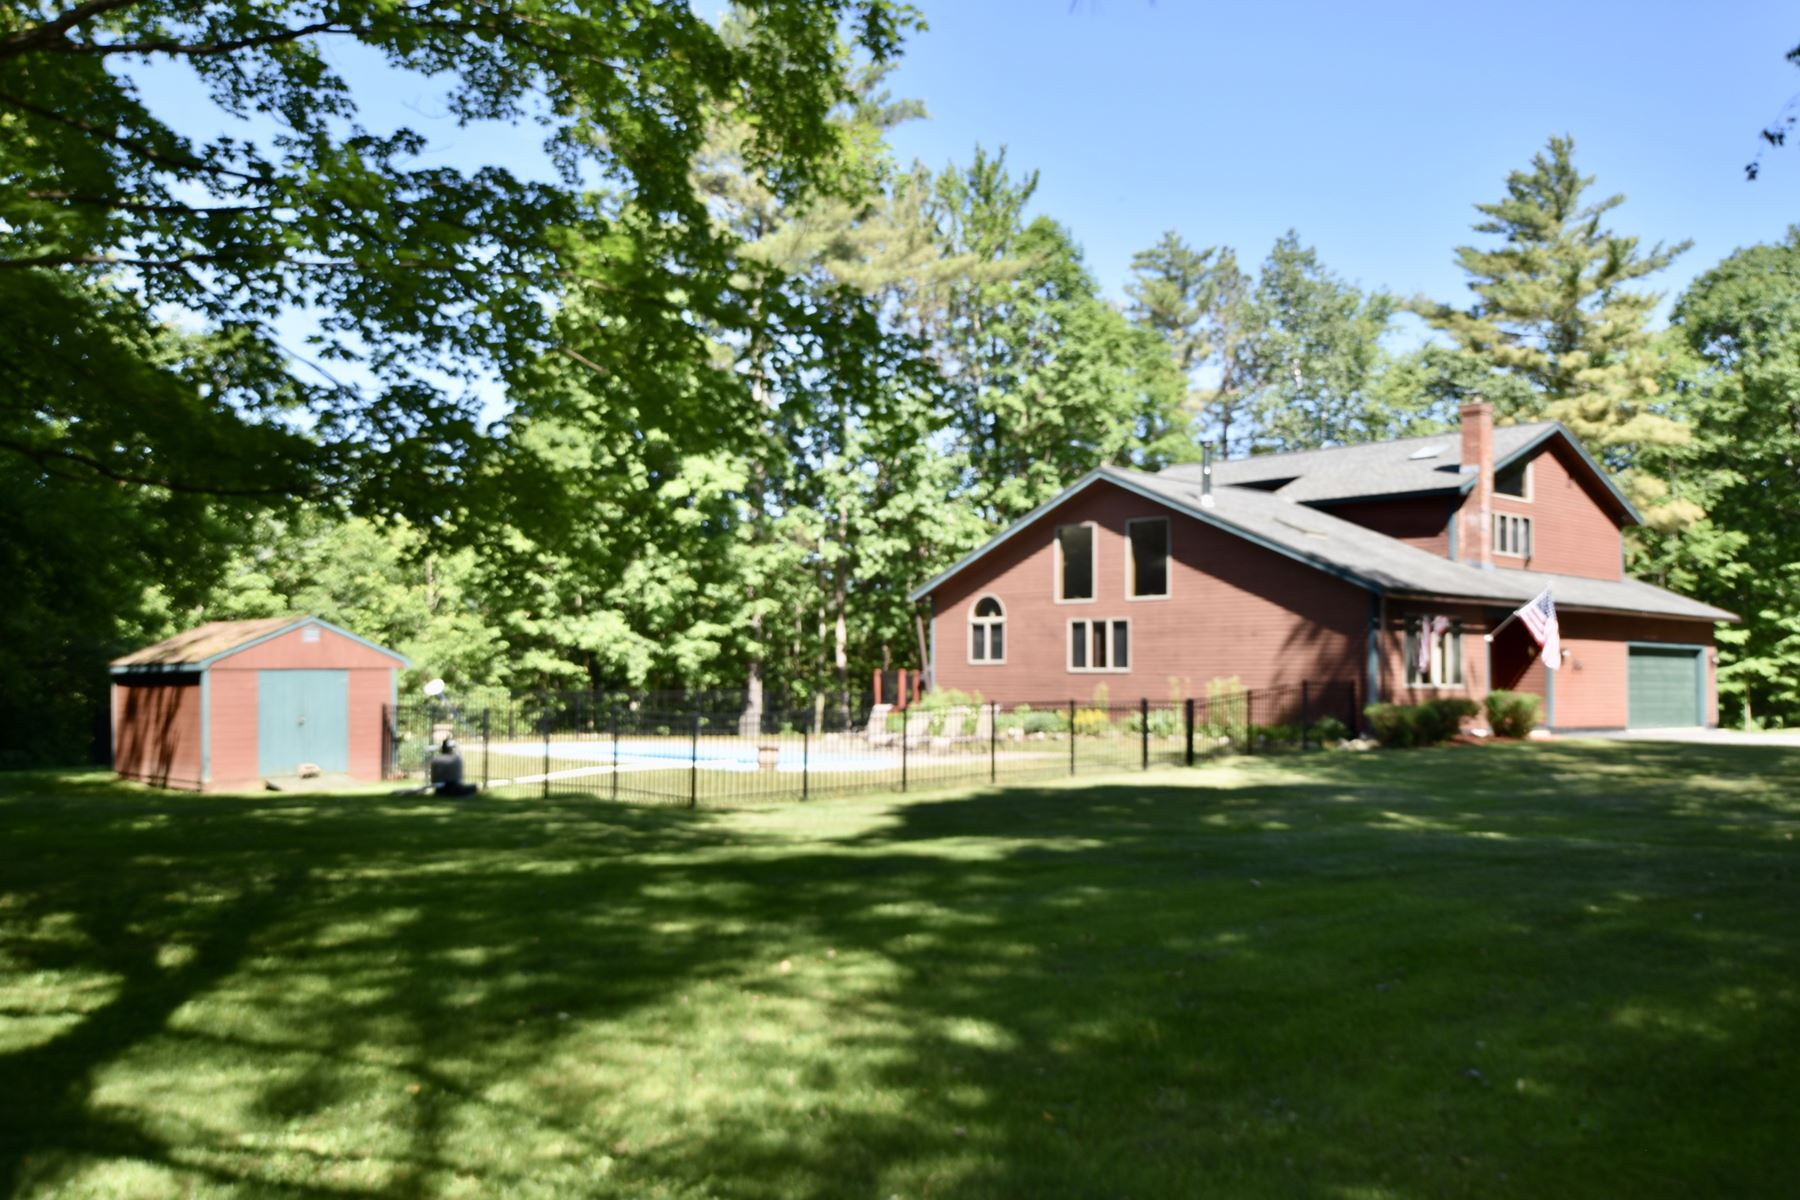 25 Sugarhouse Lane Chittenden VT 05701